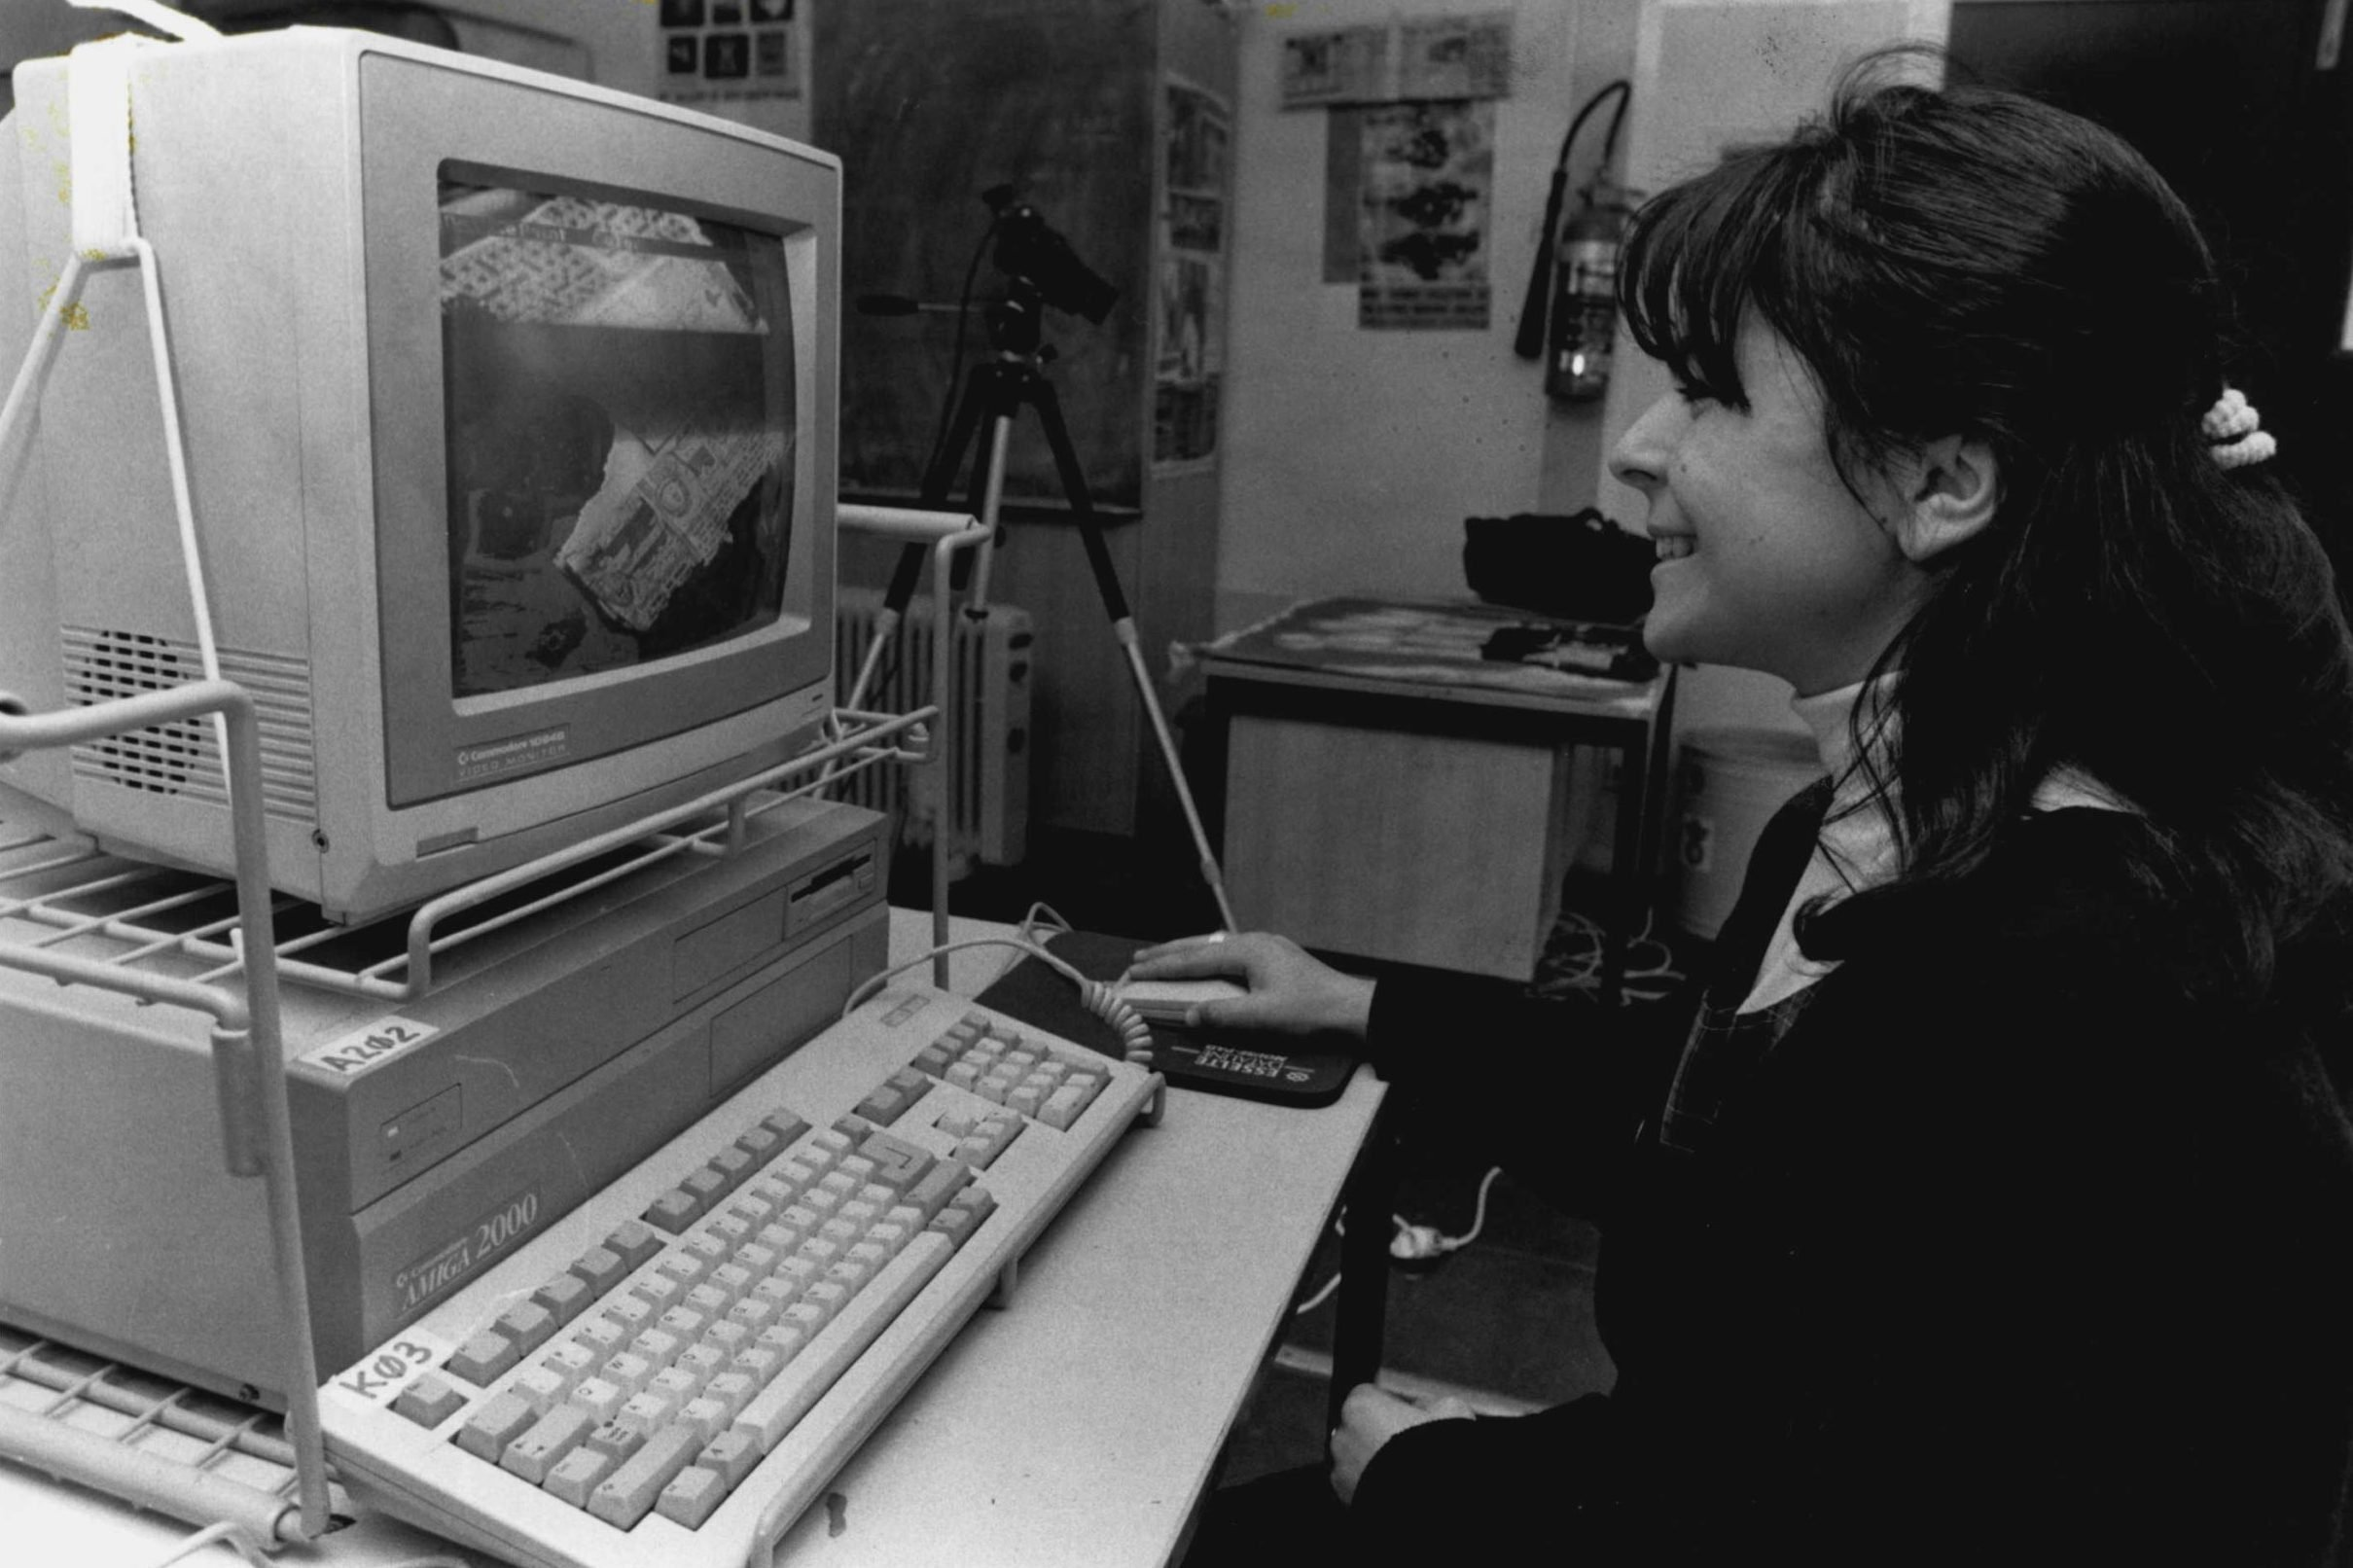 And Nina Petradis (left) studies by computer.Macarthui Girls' Technology High School, *****The school is sponsored by Commodore, which donated a large number of Amiga 500 computers and arranged a good discount when the school purchased additional co